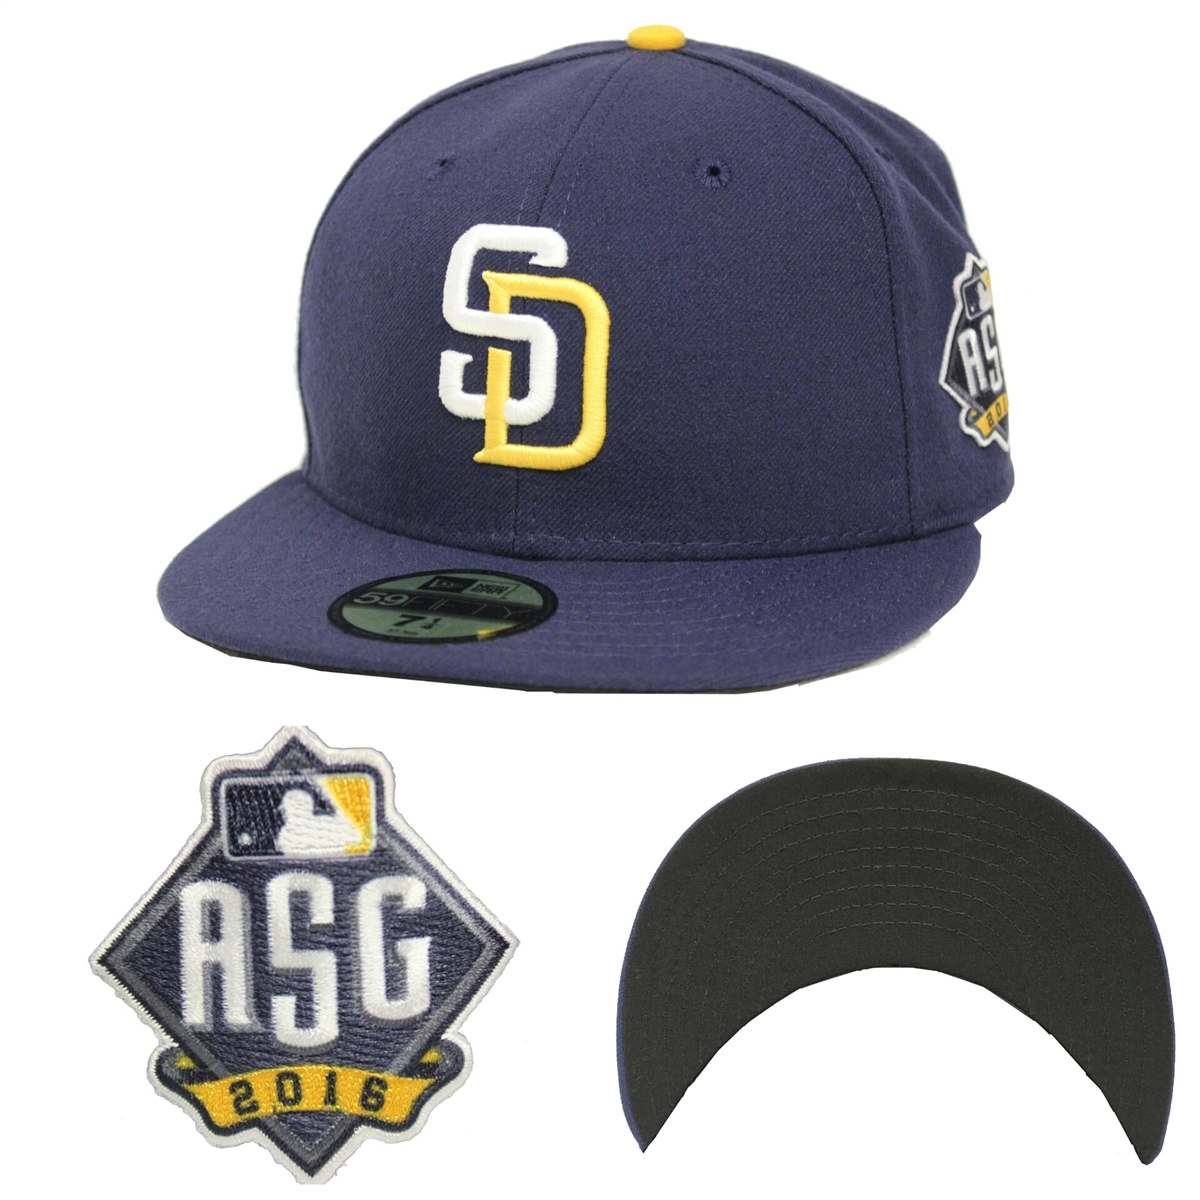 New Era 59Fifty San Diego Padres On Field All Star Game Side Patch ... 97720ea1b29